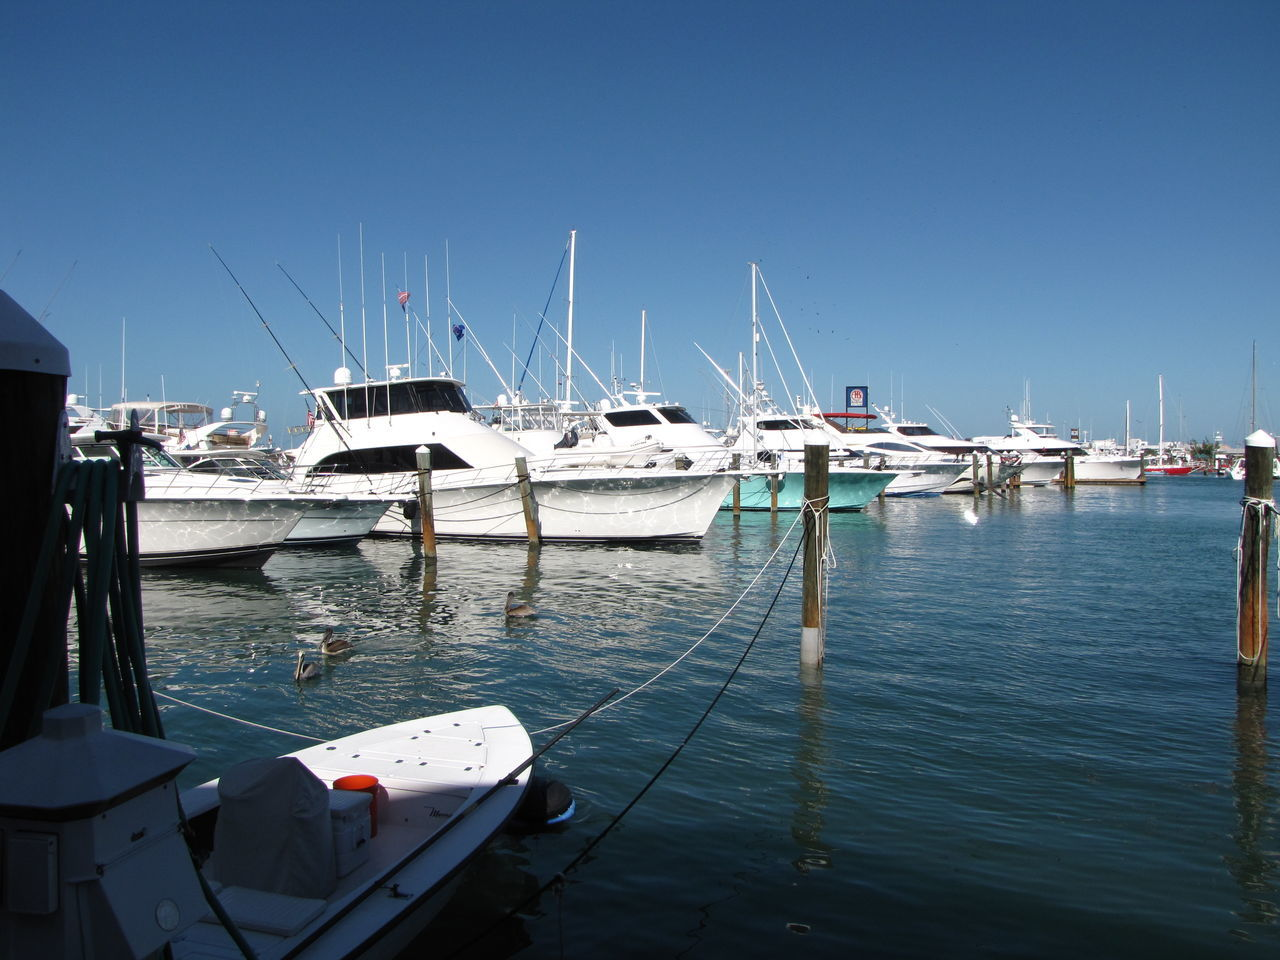 Marina Anchored Boats Architecture Beauty In Nature Clear Sky Day Destination Docks Harbor Journey Marina Mode Of Transport Moored Nature Nautical Vessel No People Outdoors Sailboat Sea Sky Transportation Water Yacht Yachting